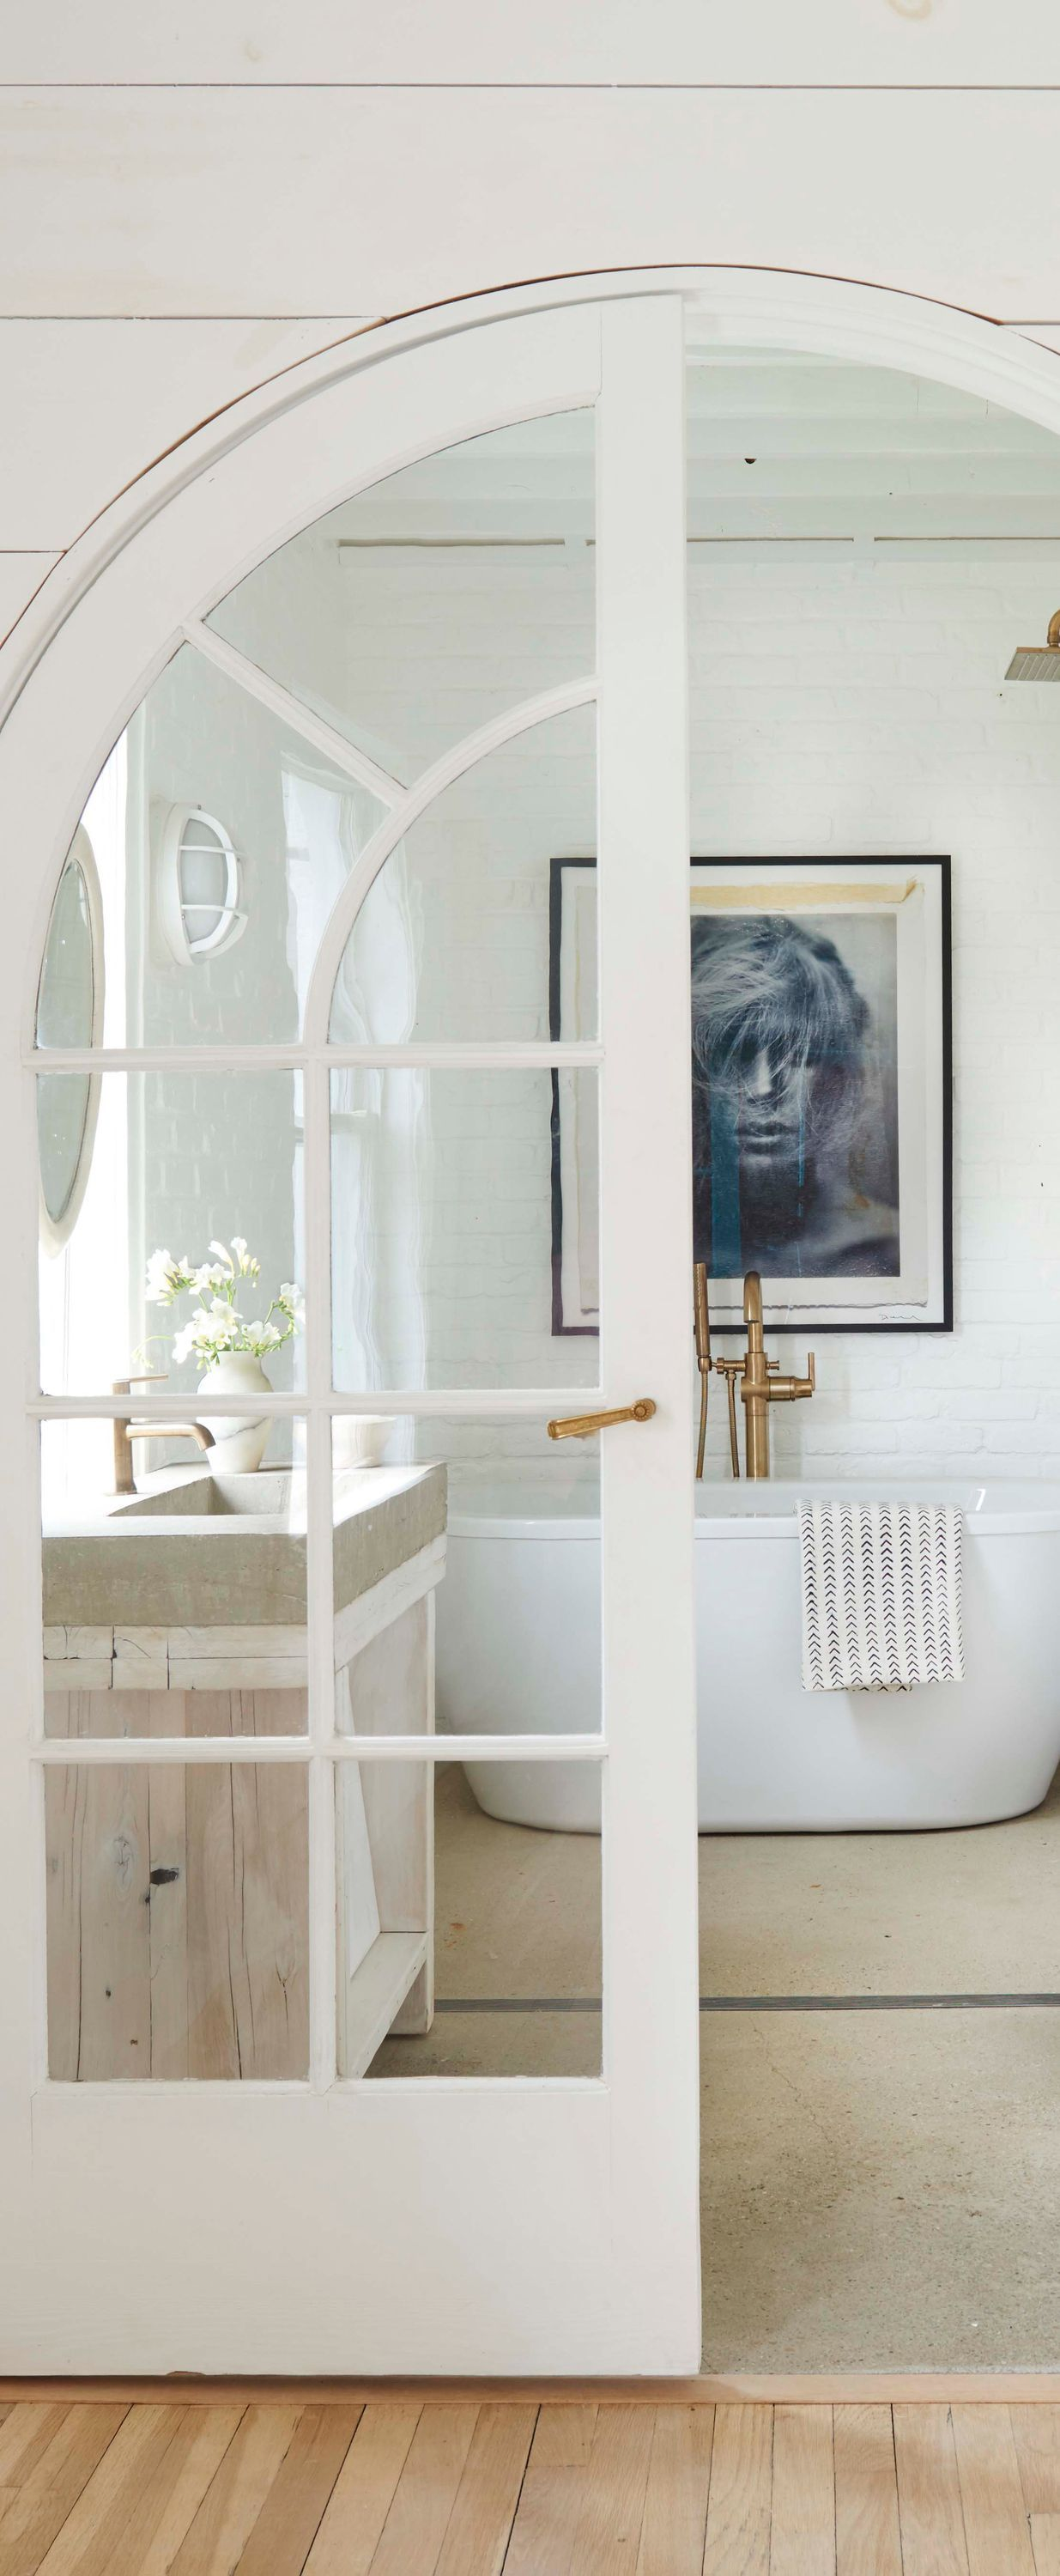 Bathroom Design Ideas - Jay Wilde Photography